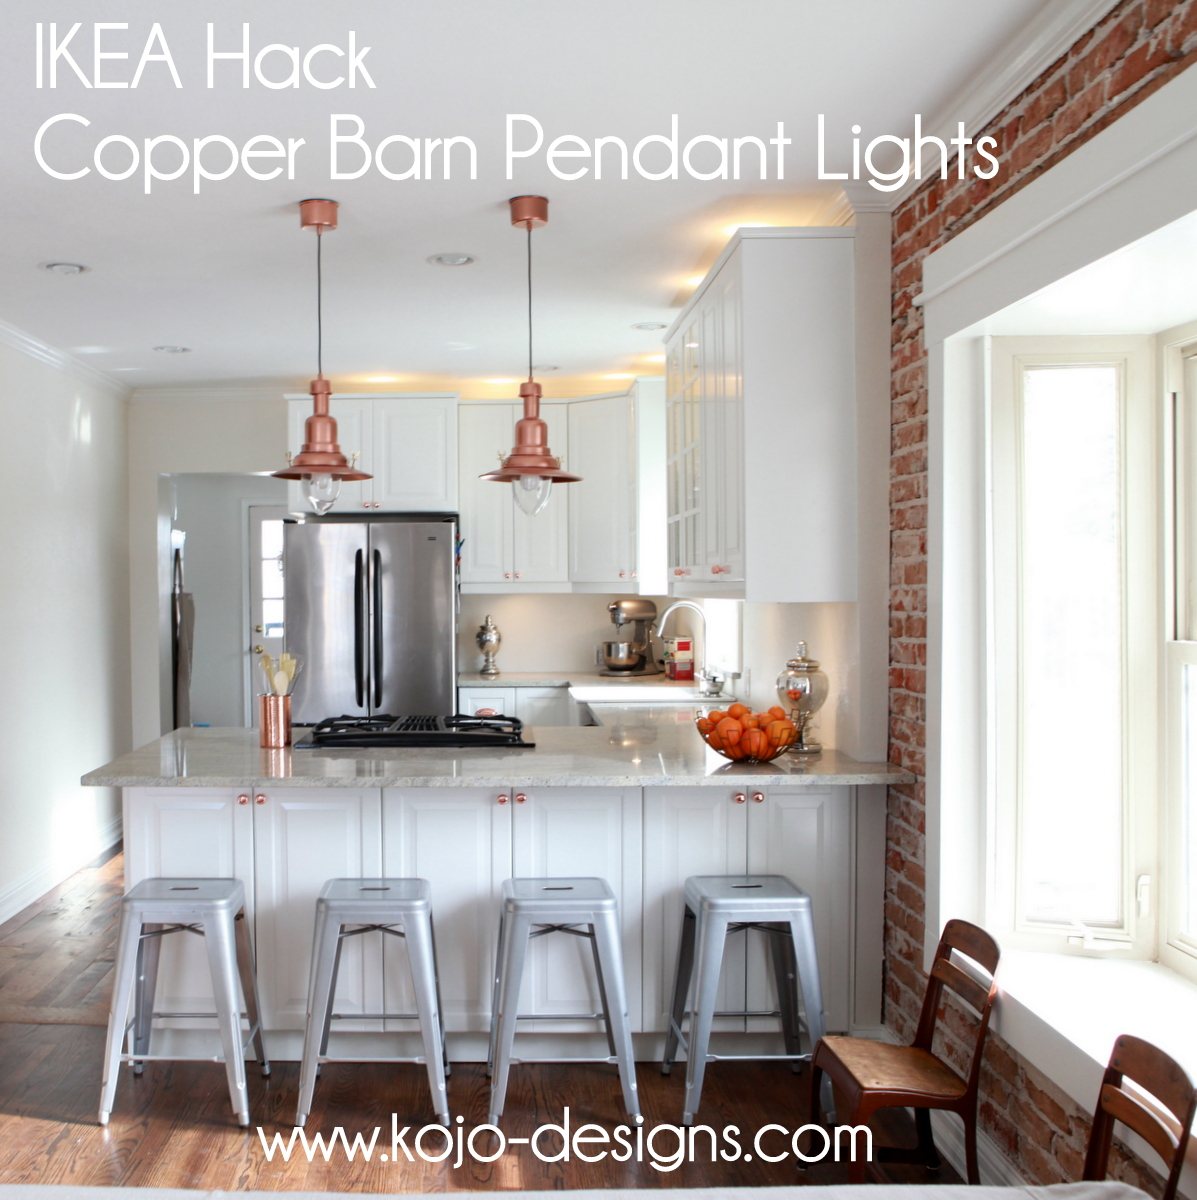 IKEA Hack How To Turn An OTTAVA Light Into A Copper Barn Pendant